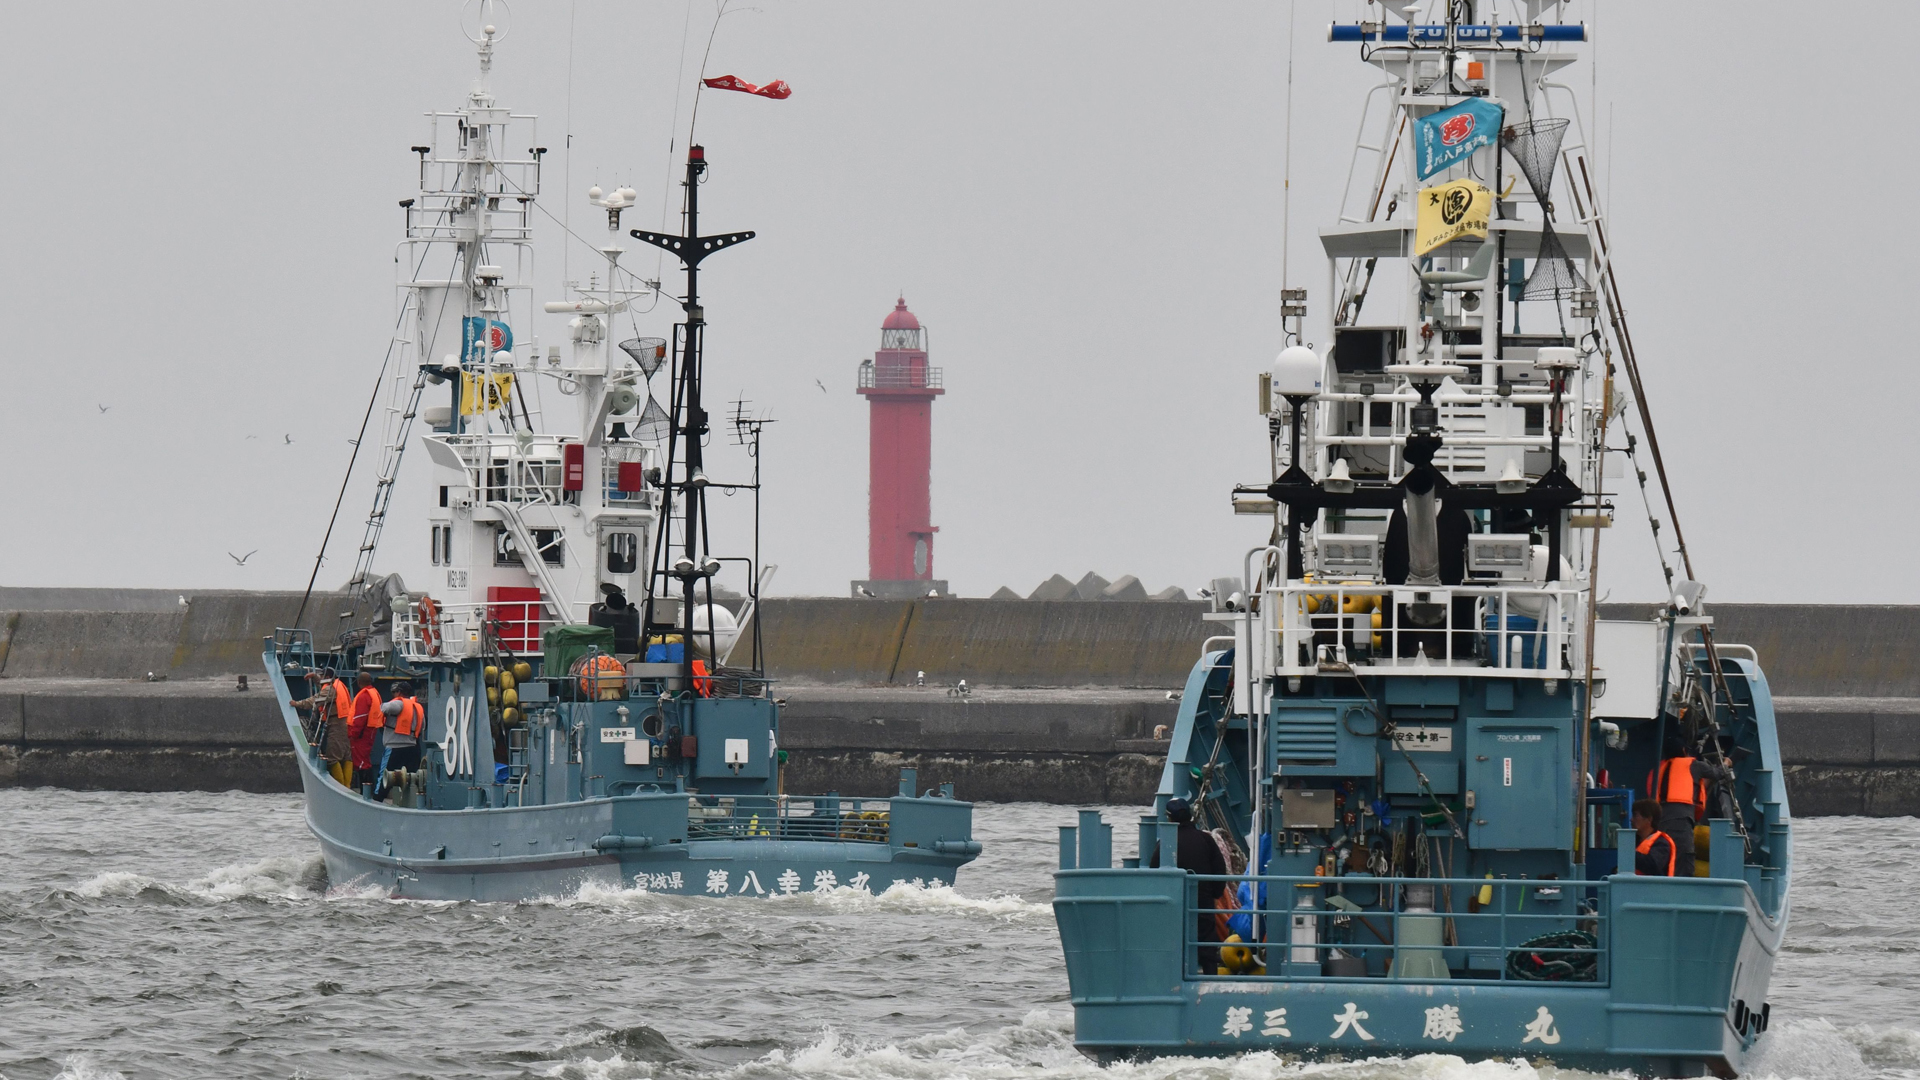 Whaling ships depart from a port in Kushiro, Hokkaido Prefecture on July 1, 2019. (Credit: Kazuhiro Nogi/AFP/Getty Images)